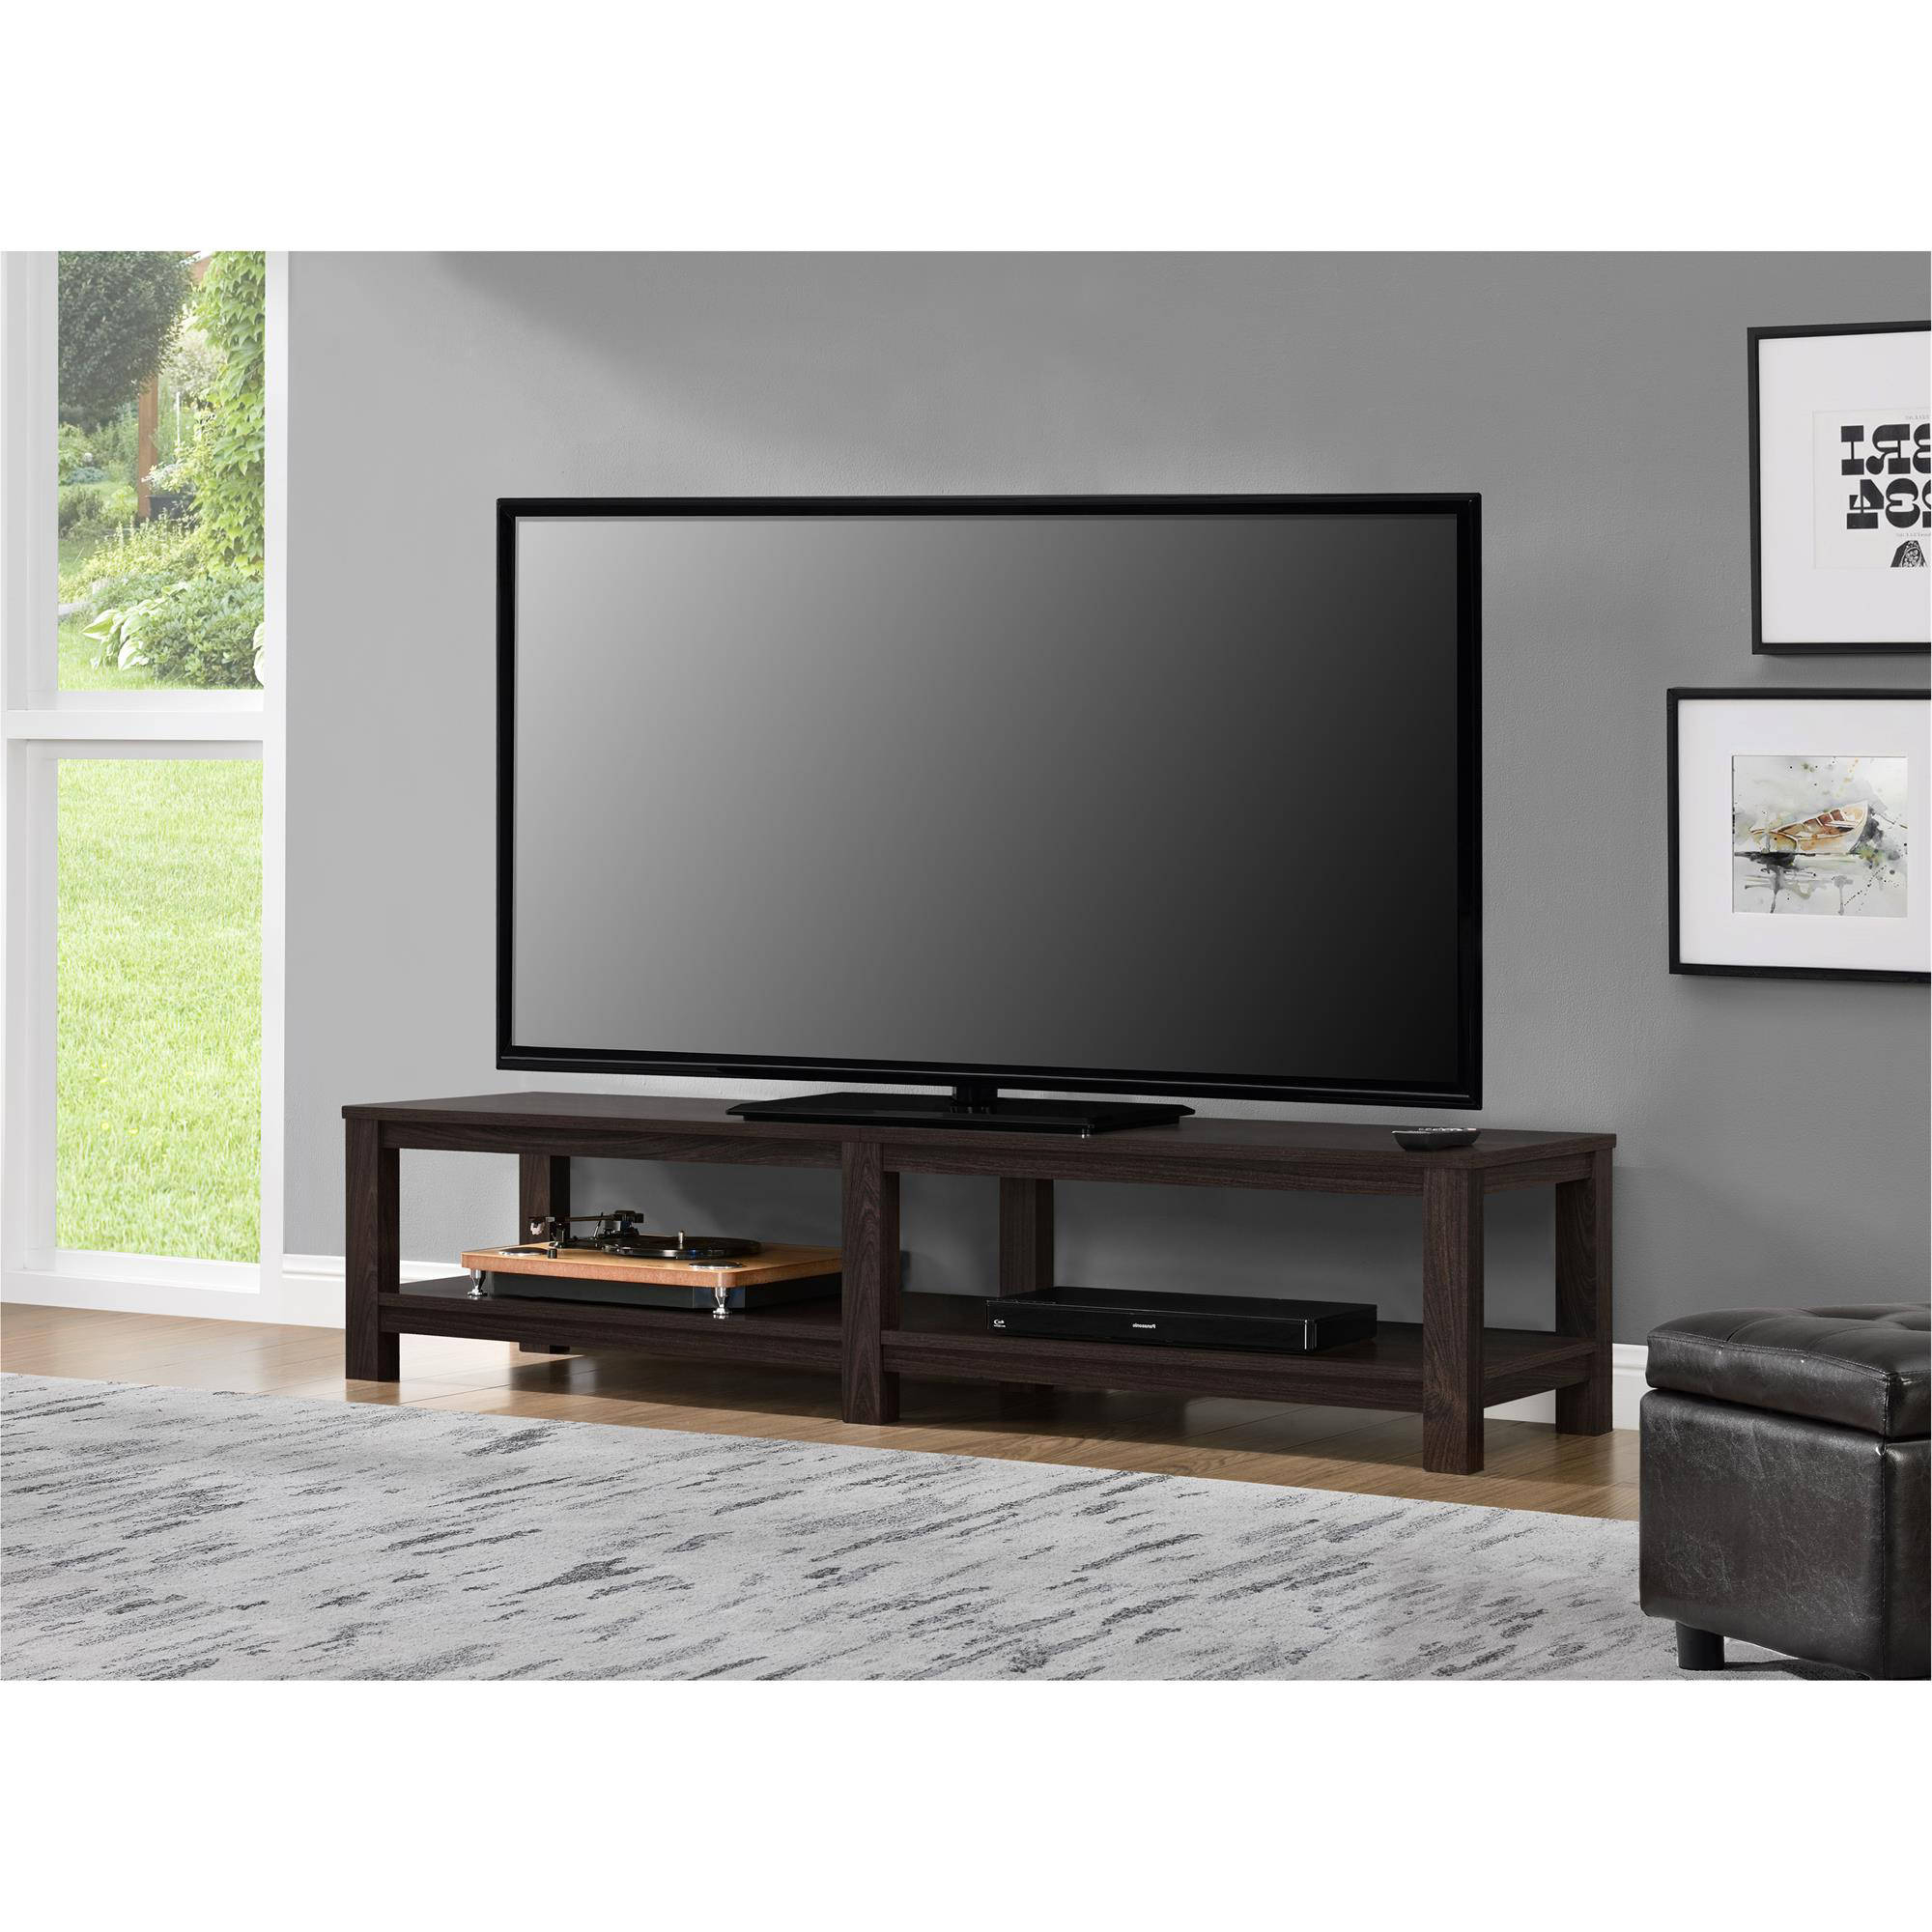 "Popular Mainstays Parsons Tv Stand For Tvs Up To 65"", Multiple Colors Regarding 24 Inch Led Tv Stands (View 6 of 20)"